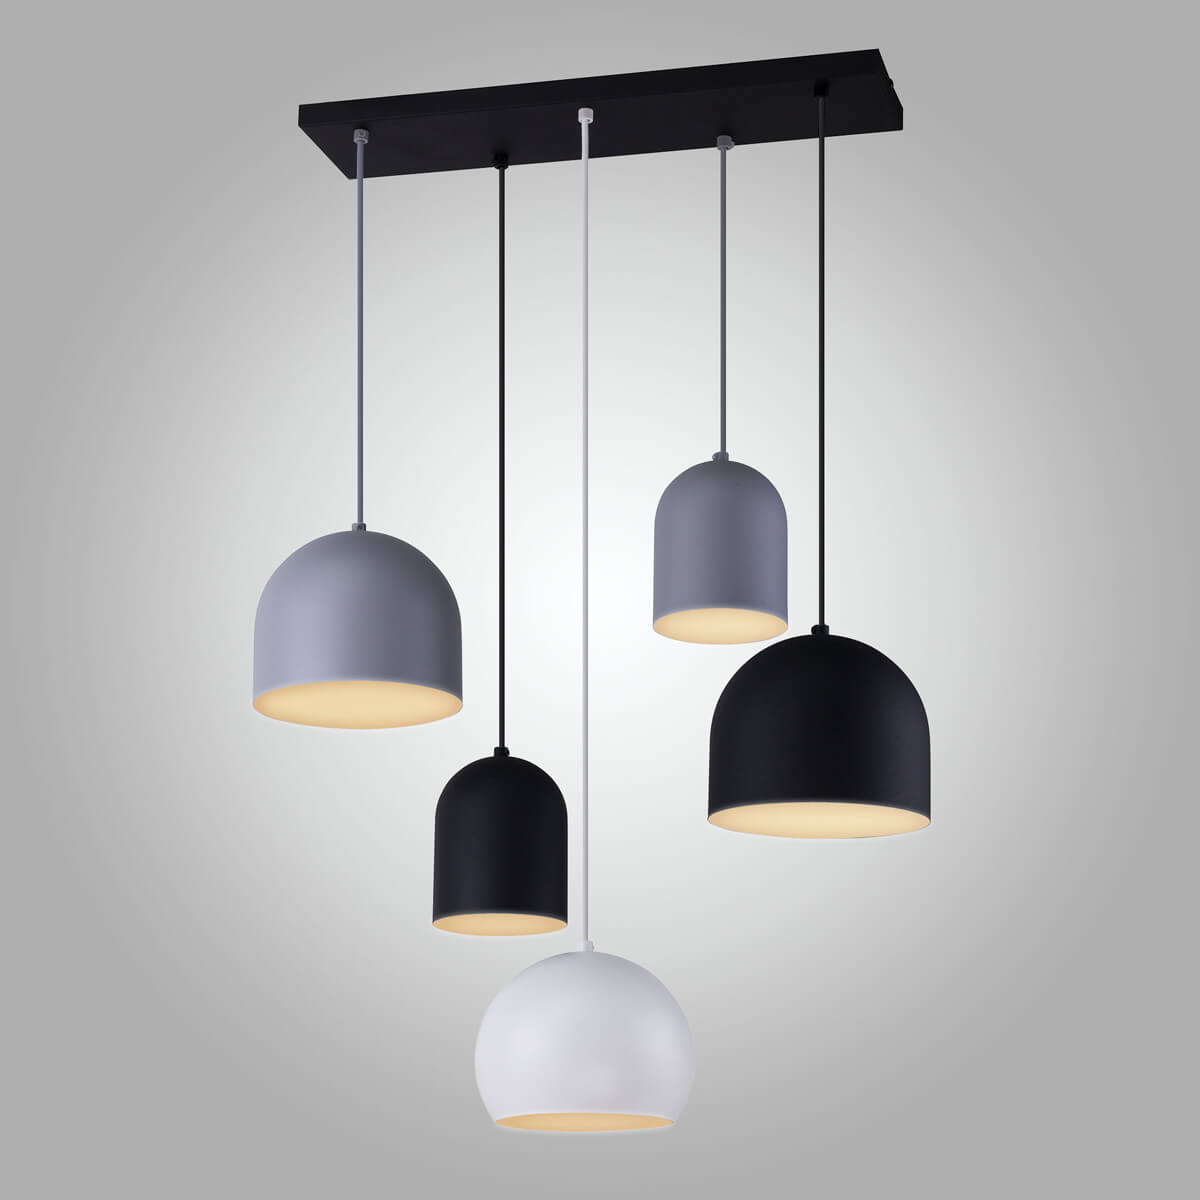 Светильник TK Lighting 2829 Tempre Tempre